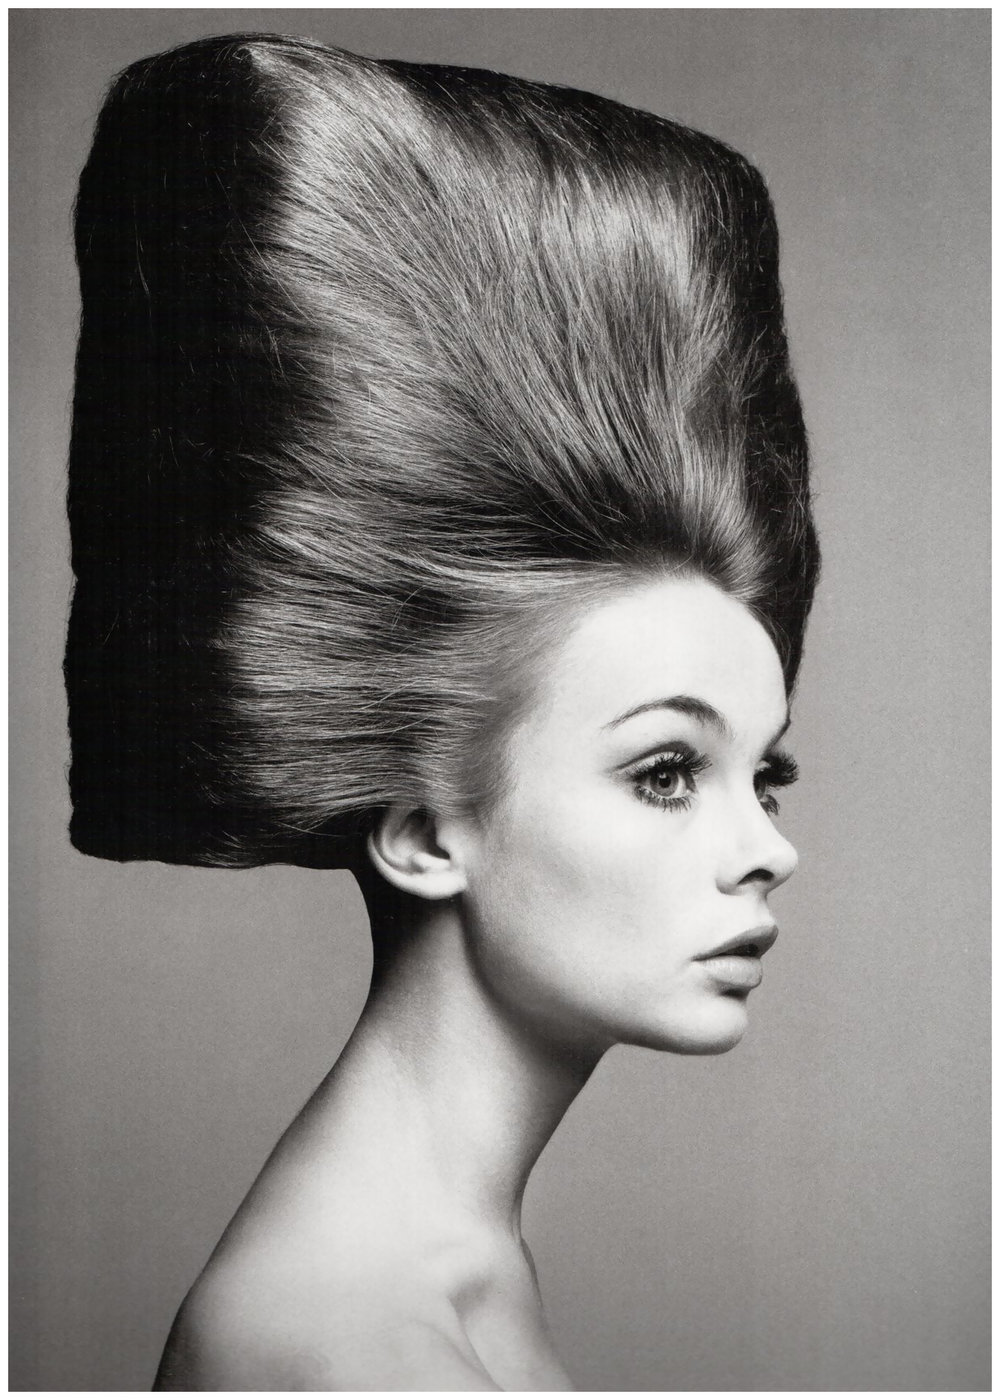 11-richard-avedon-for-vogue-us-in-the-august-1965-issue.jpg